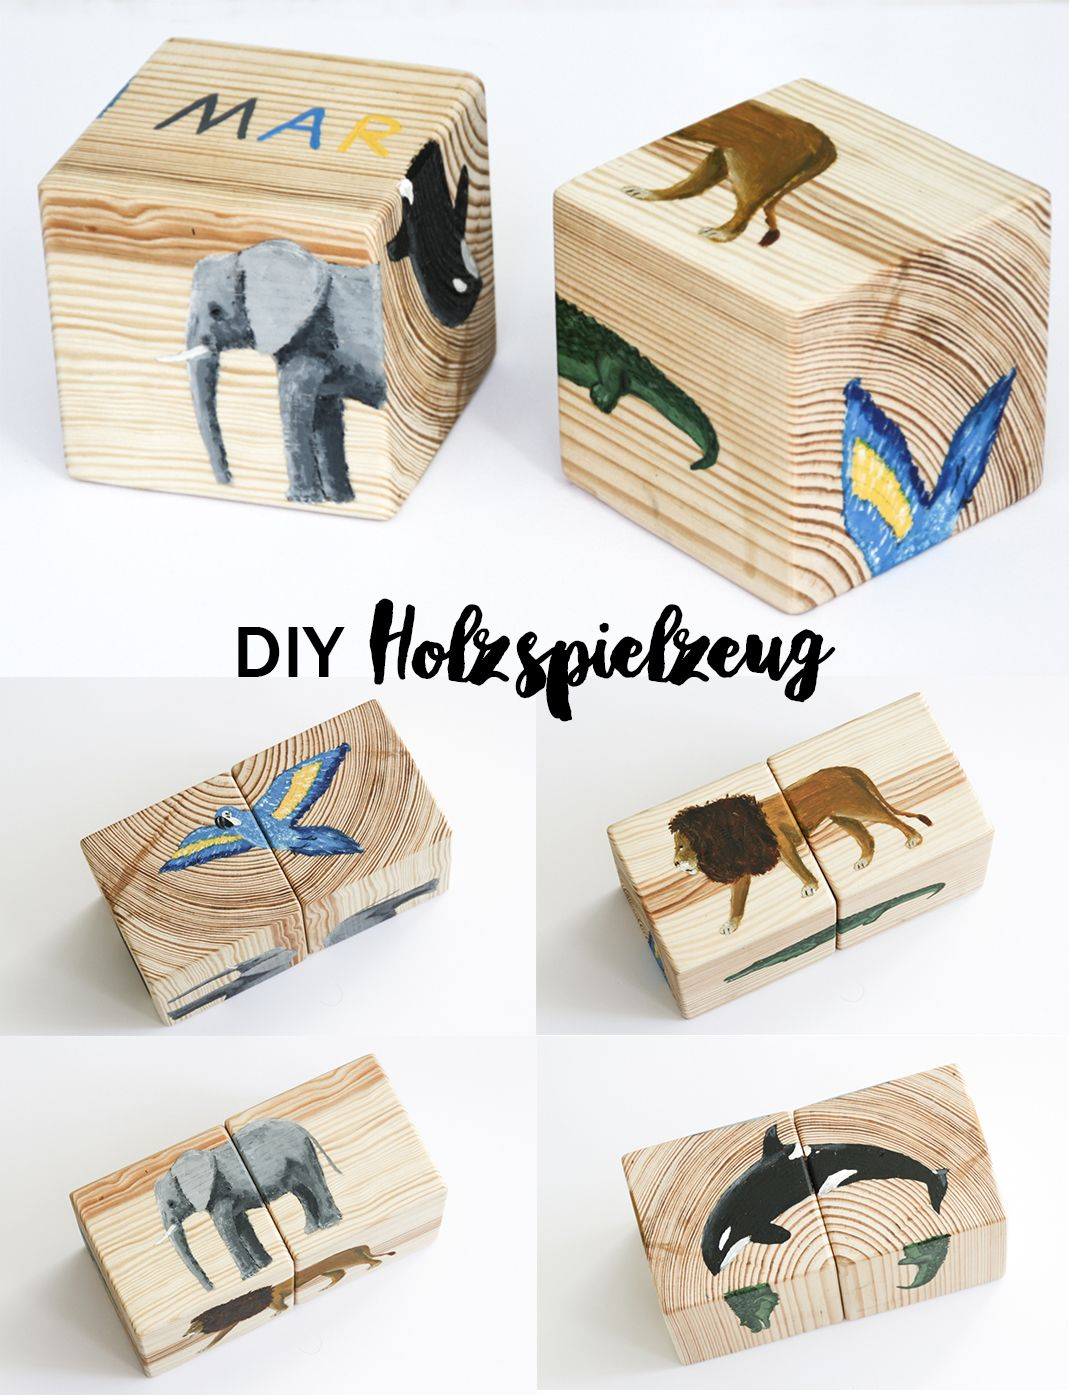 diy holzspielzeug selbstgemacht schereleimpapier diy upcycling pinterest puzzles f r. Black Bedroom Furniture Sets. Home Design Ideas